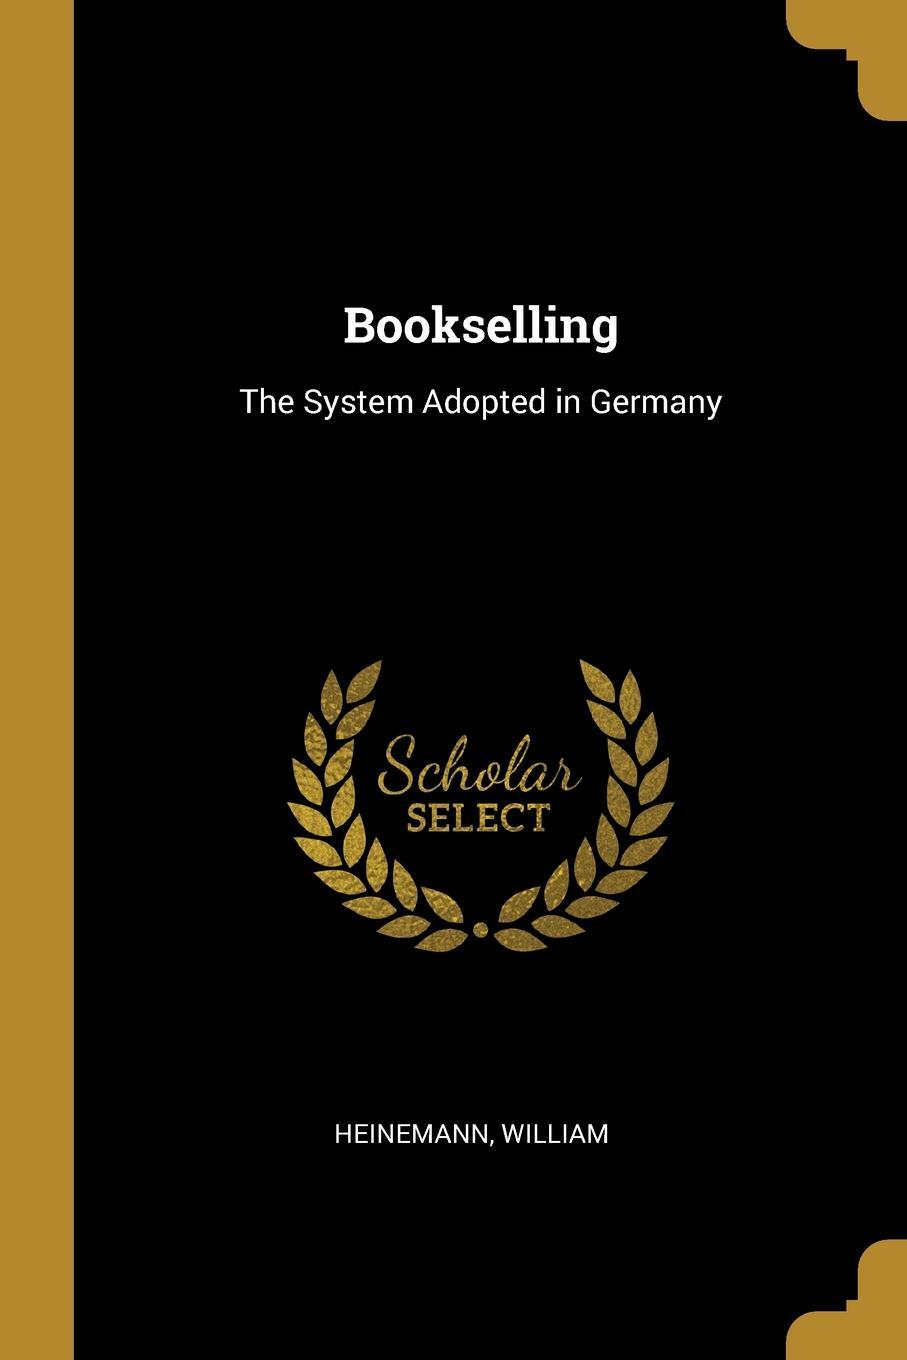 Bookselling. The System Adopted in Germany